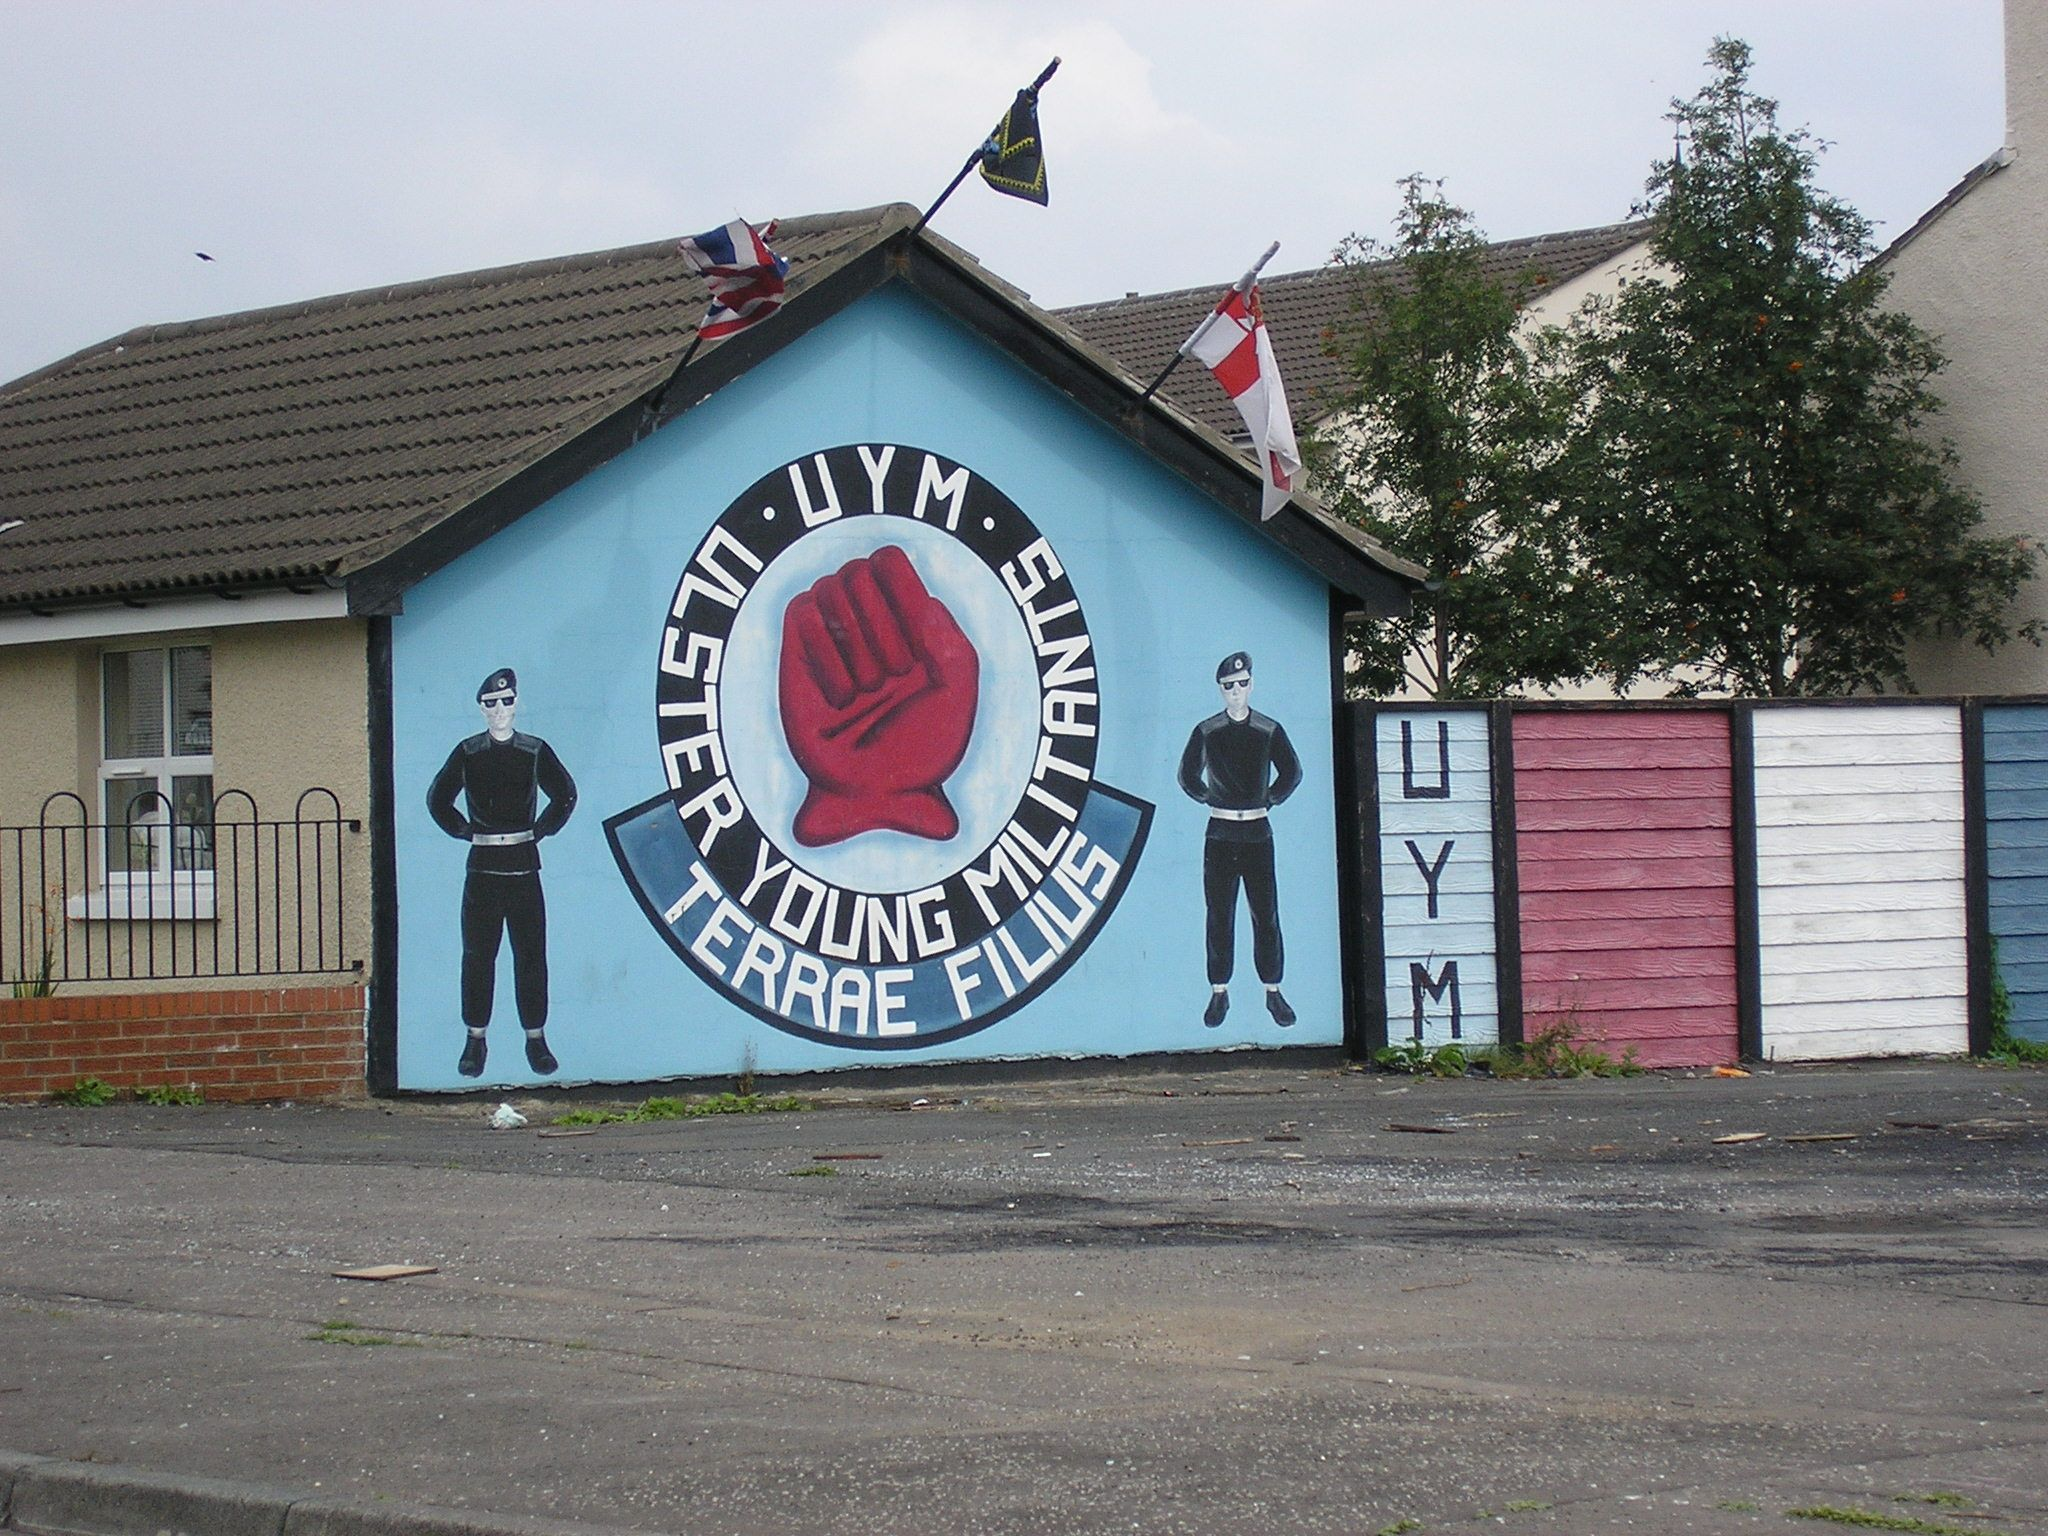 Ulster Young Militants (UYM) Mural, Shankill Parade, off Shankill Road, Belfast, Northern Ireland.